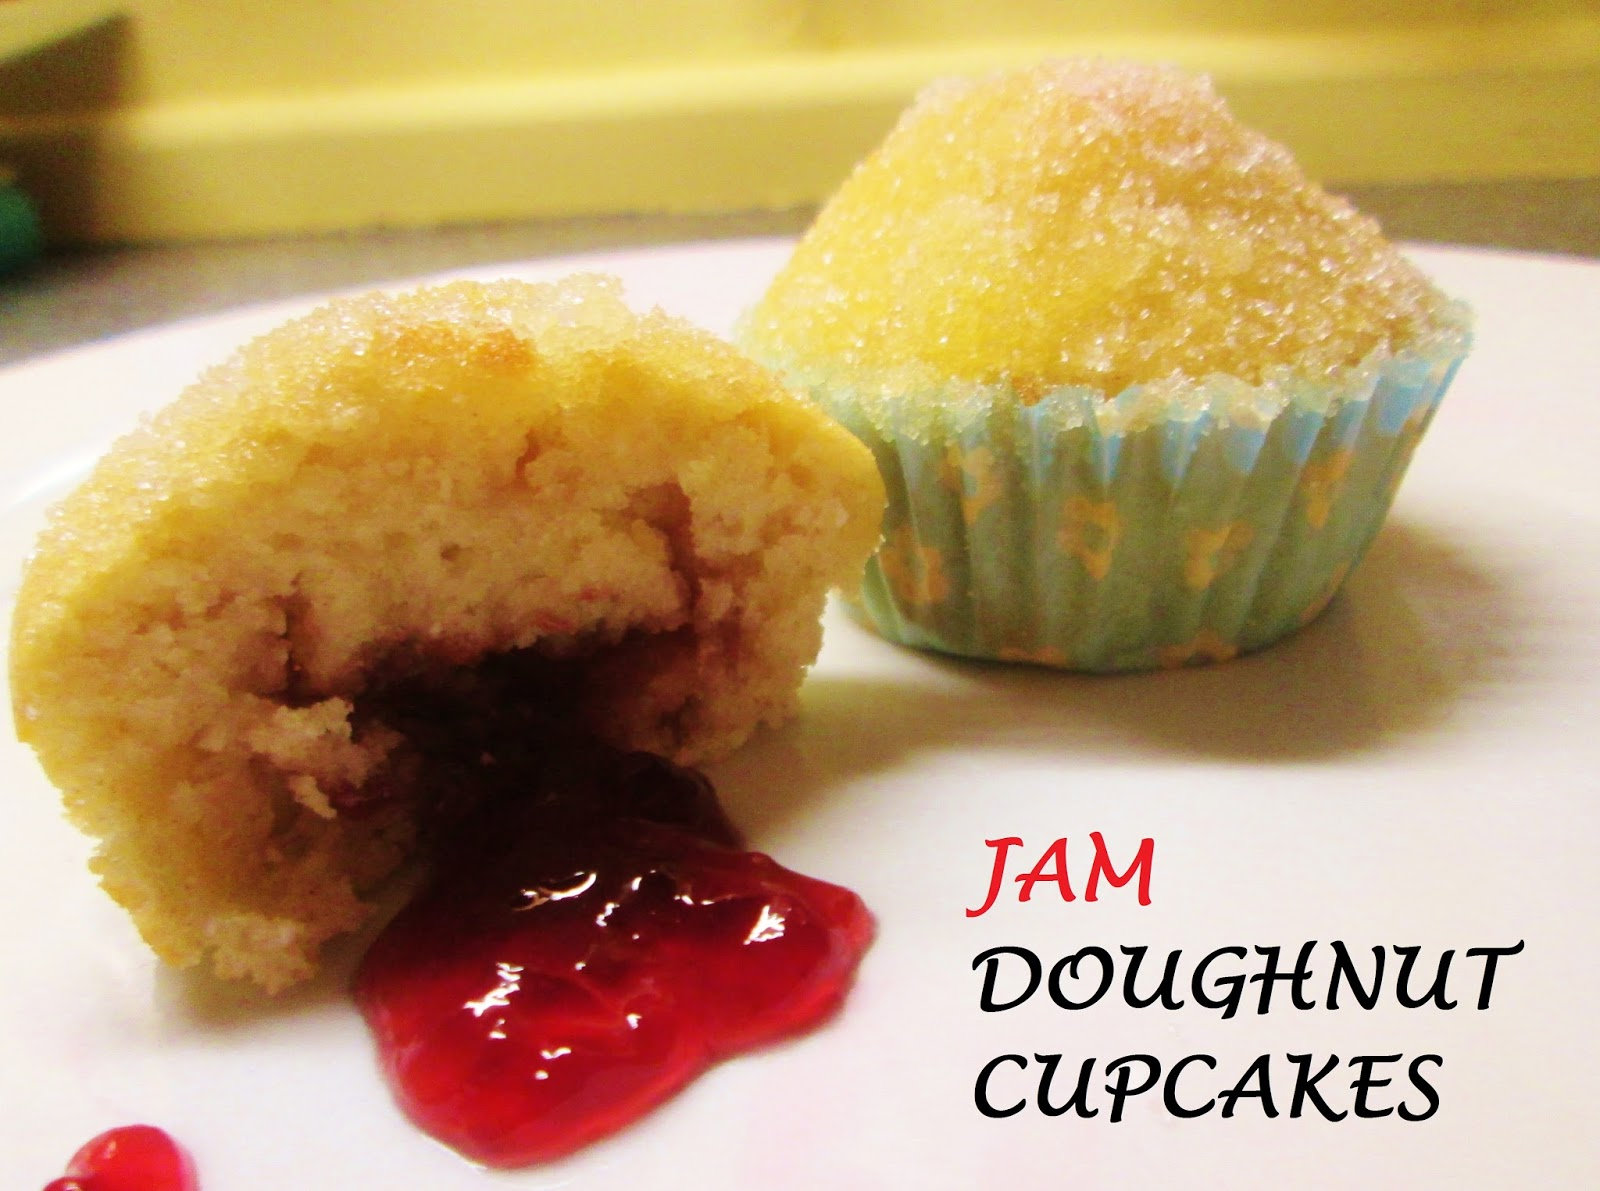 http://themessykitchenuk.blogspot.co.uk/2013/08/jam-doughnut-cupcakes.html